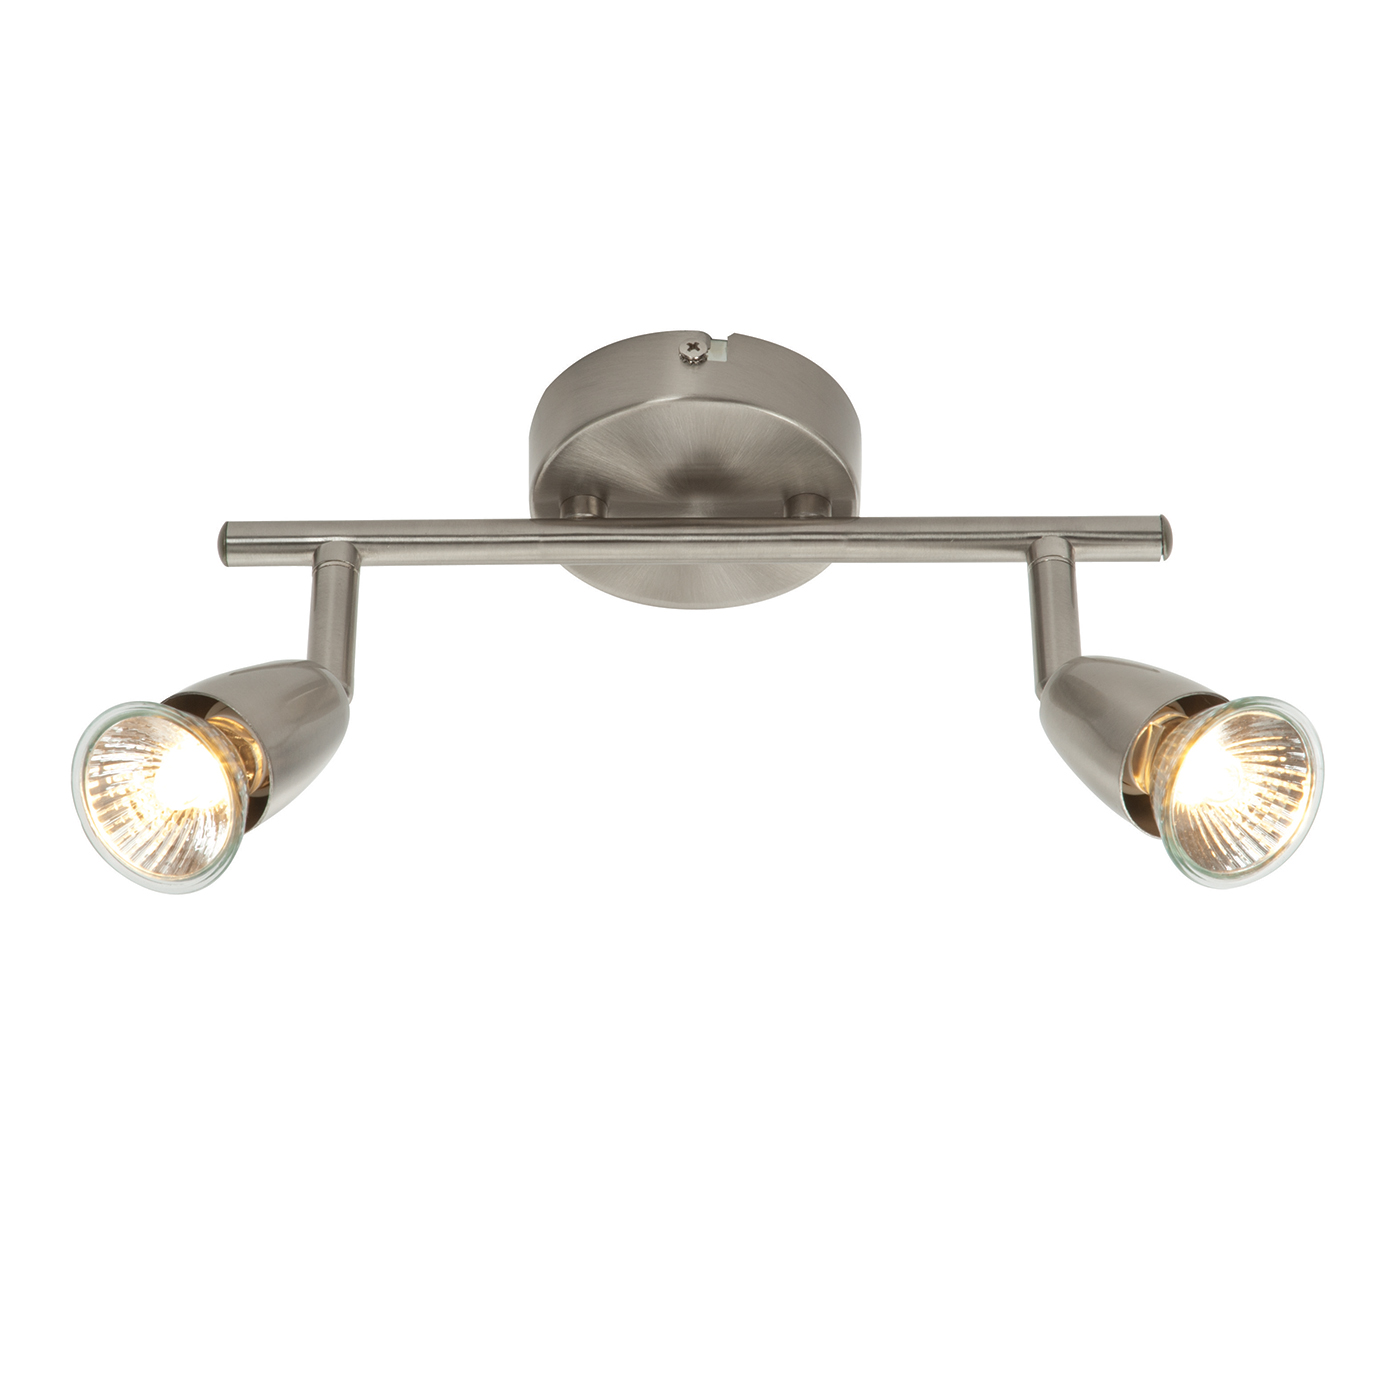 Endon Amalfi ceiling spotlight bar 2x 50W Satin nickel effect plate Thumbnail 1